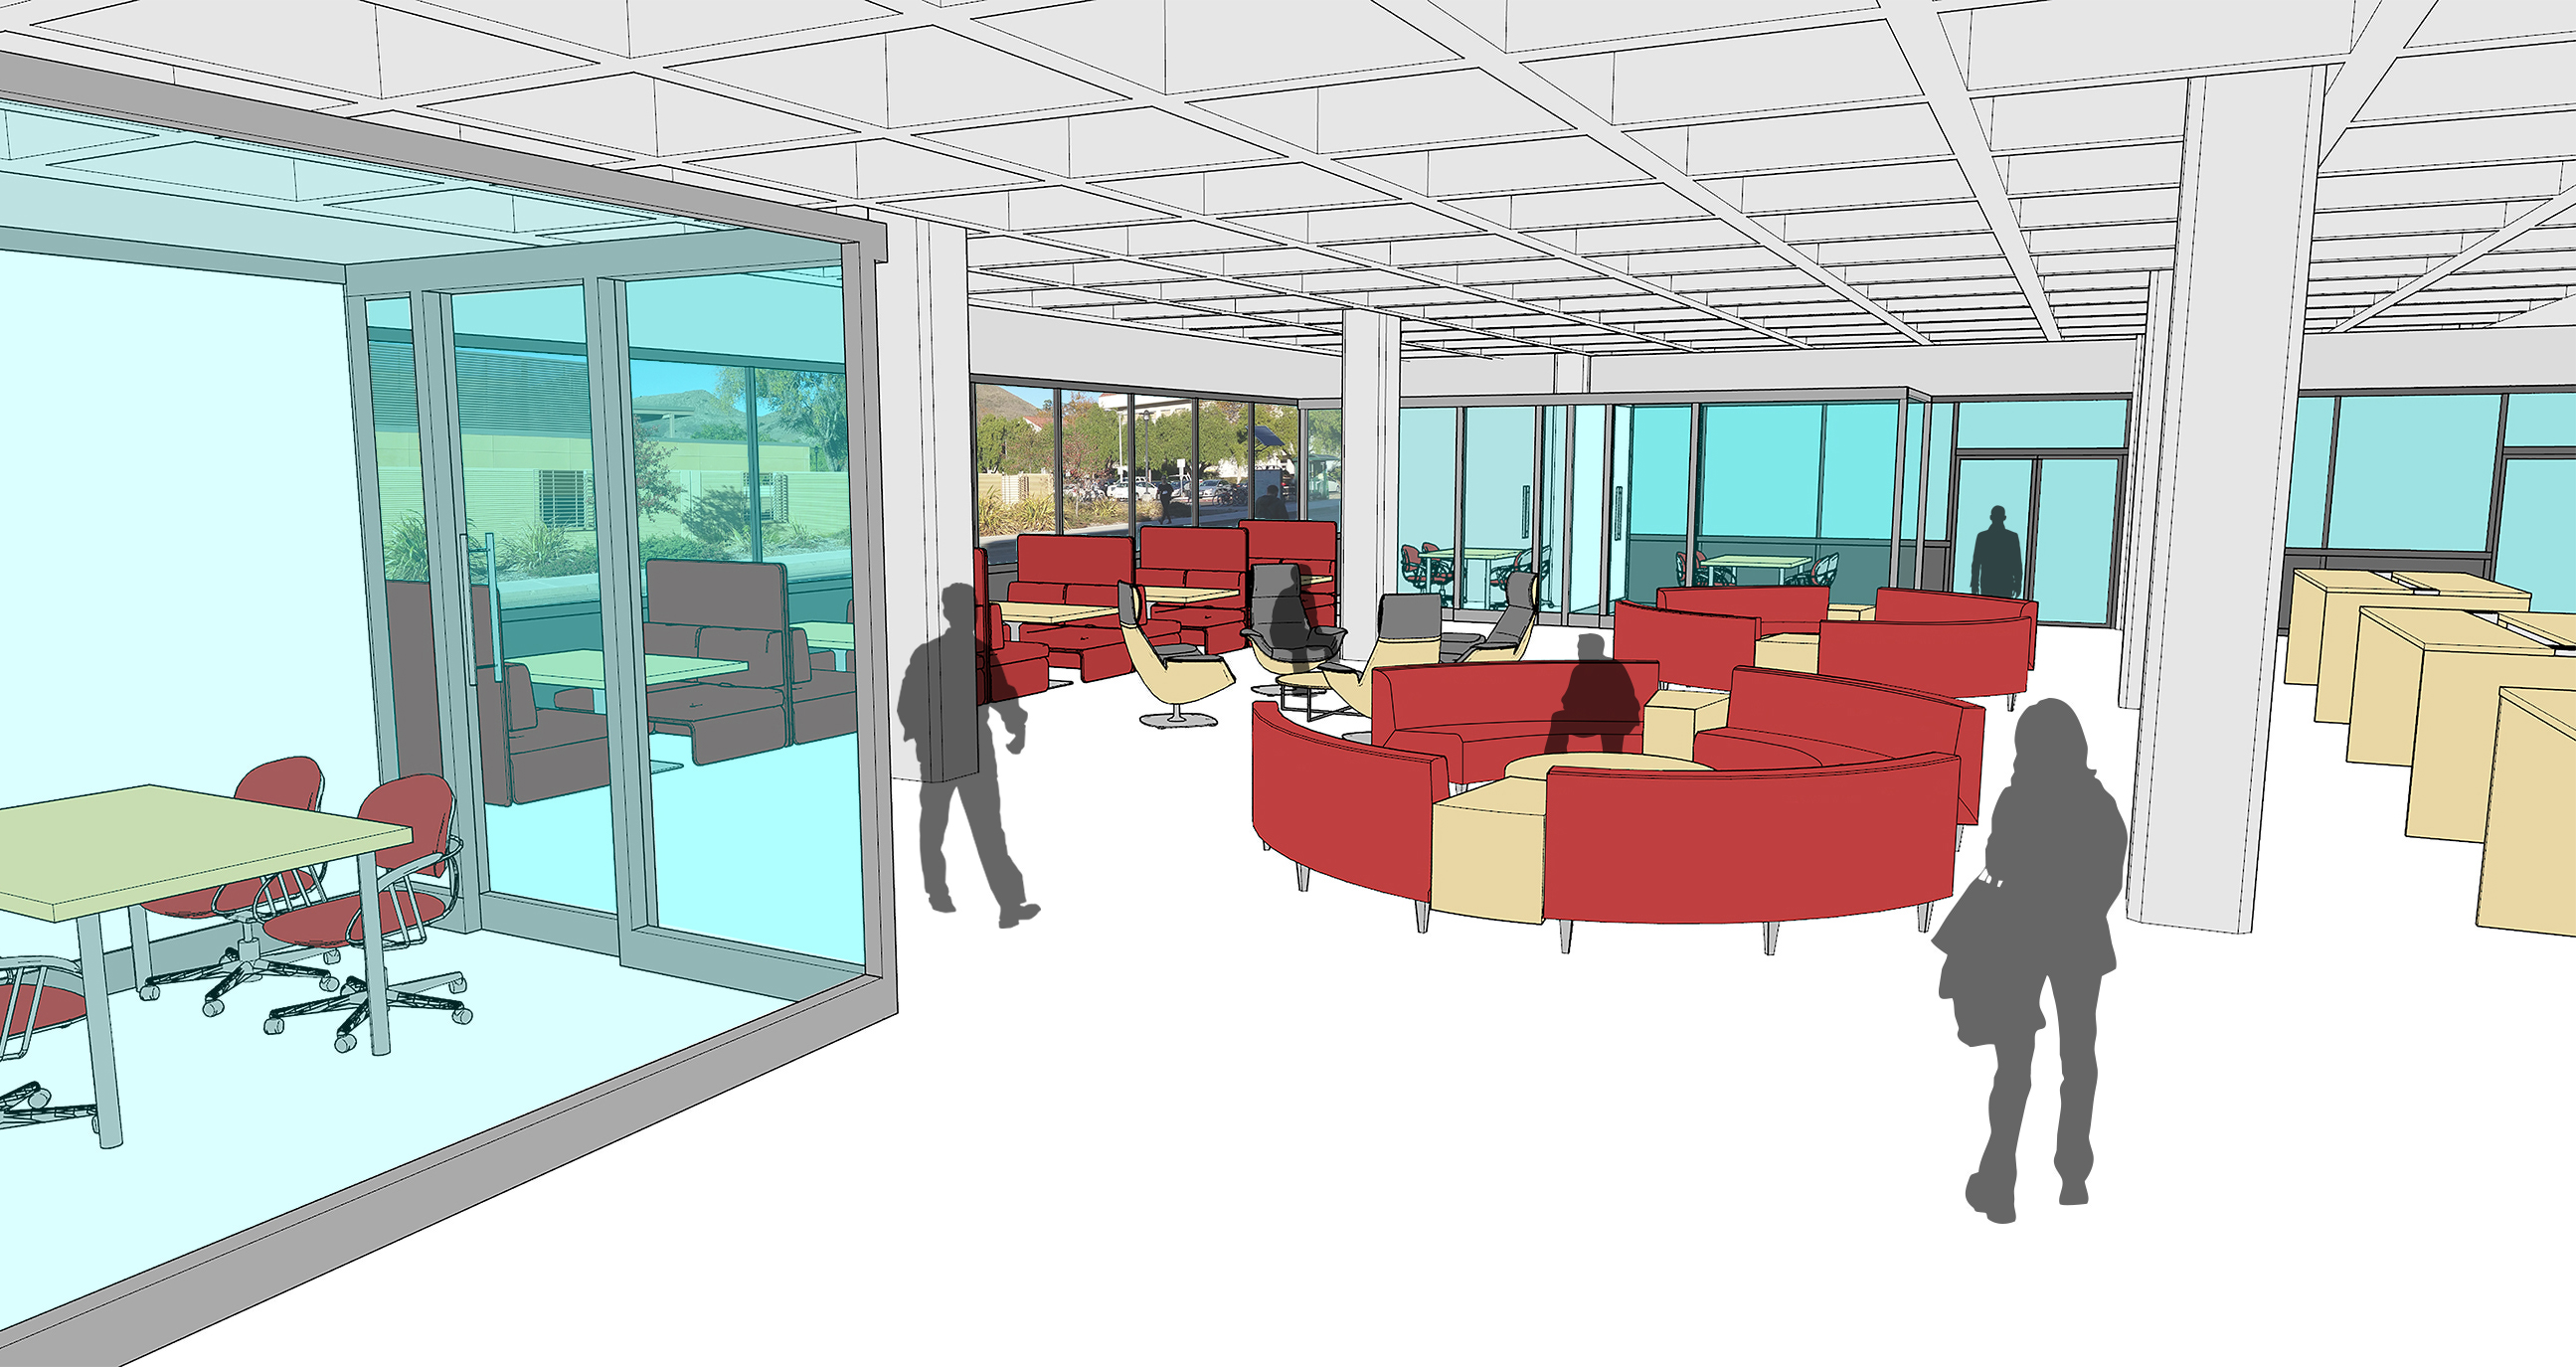 An early look at the renovations proposed for the first floor